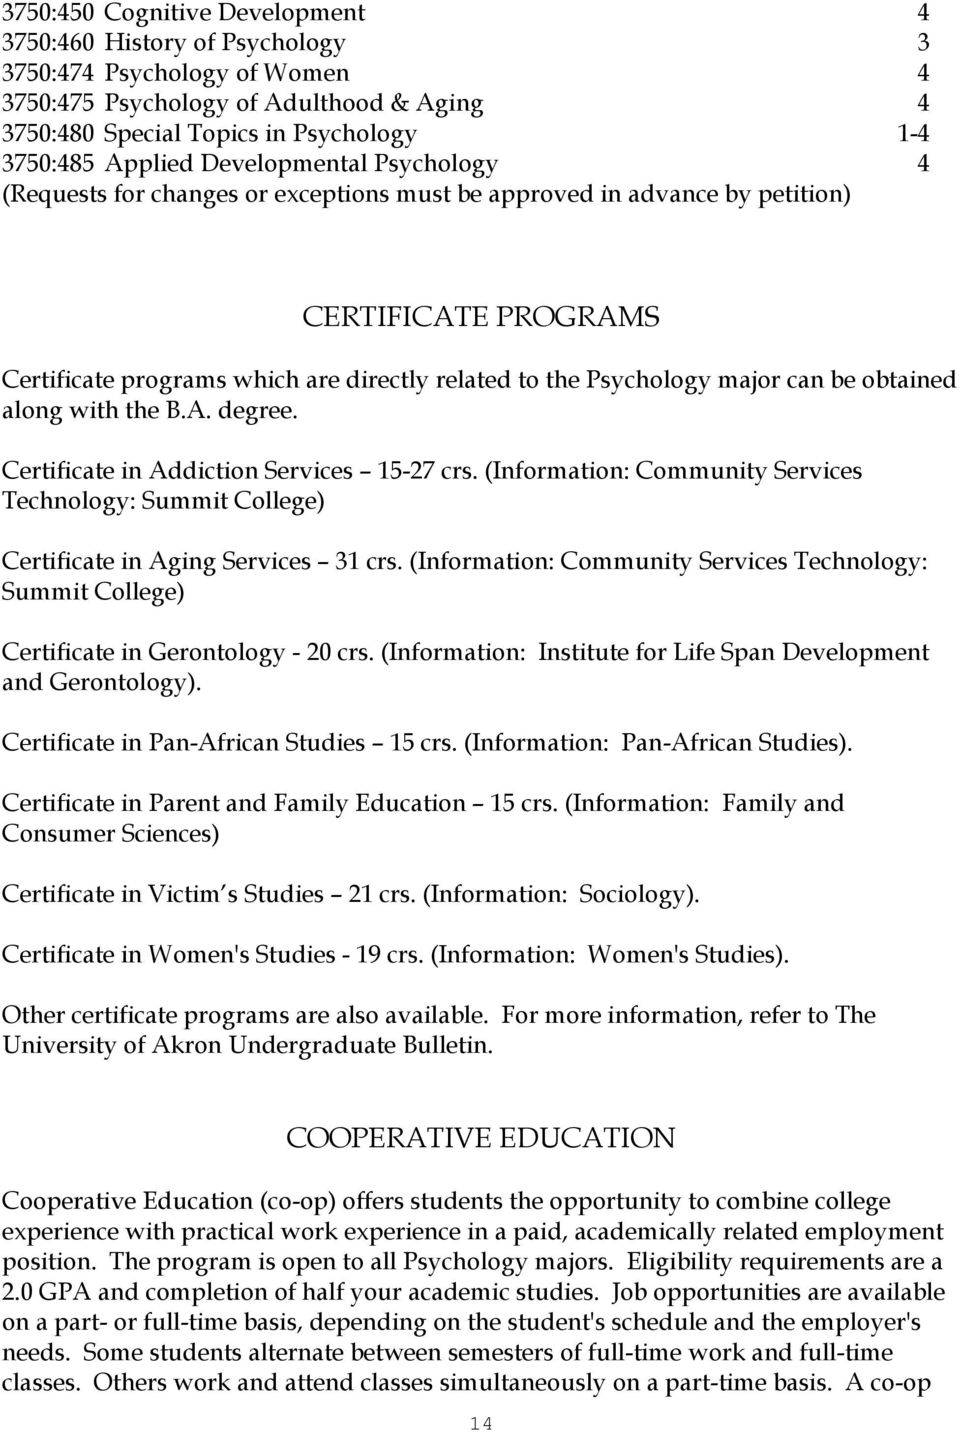 can be obtained along with the B.A. degree. Certificate in Addiction Services 15-27 crs. (Information: Community Services Technology: Summit College) Certificate in Aging Services 31 crs.